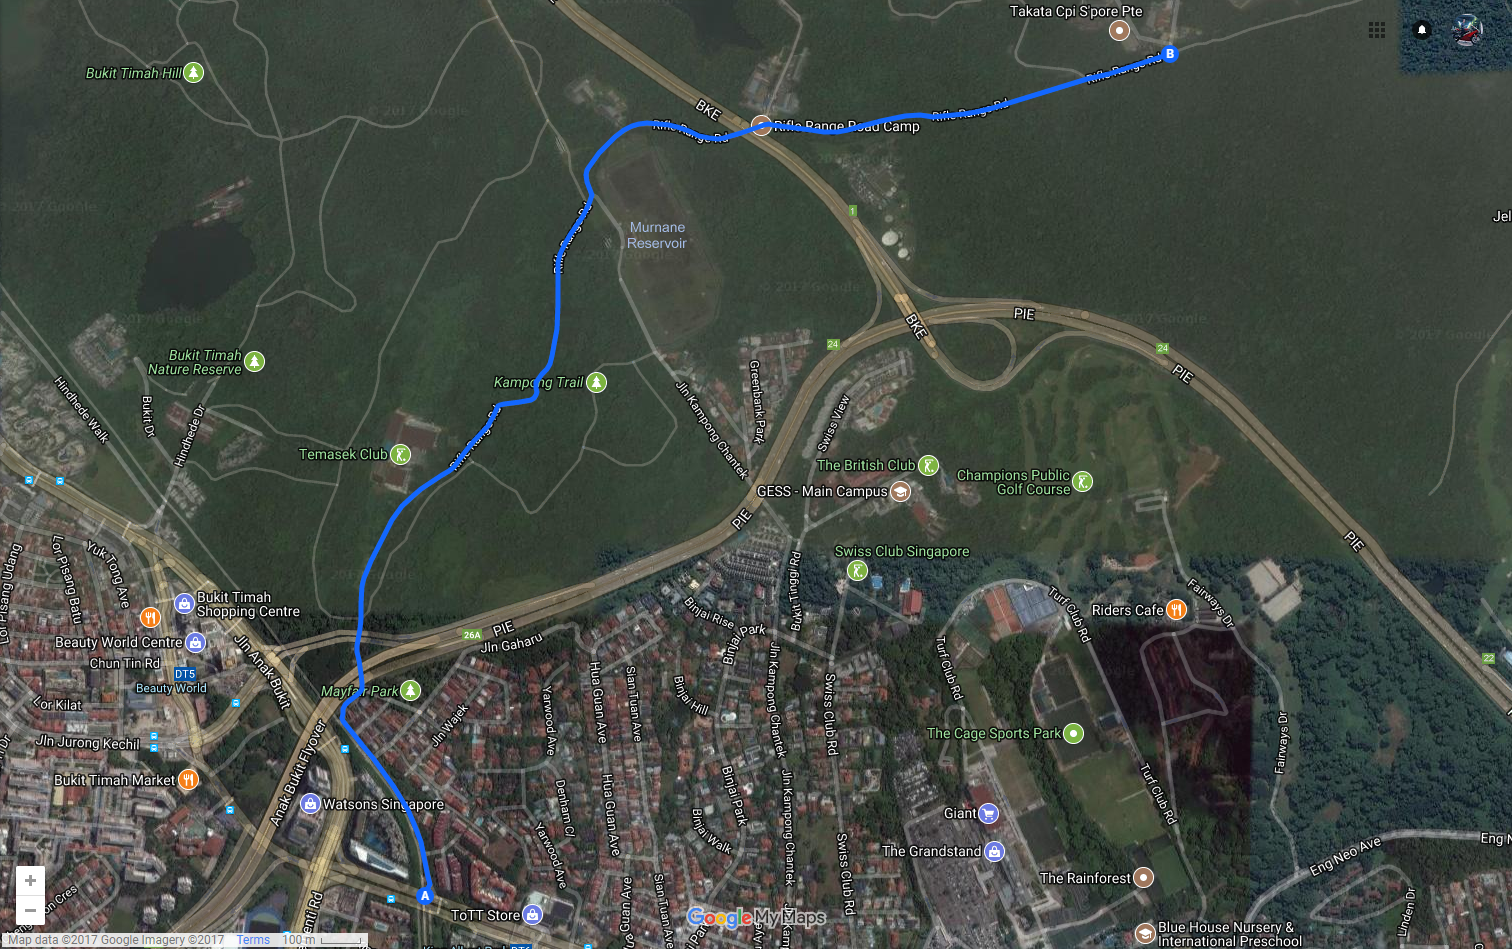 5 Ulu Initial D-Worthy Roads In Singapore Every Newbie And Laojiao Driver Should Conquer (3) - Rifle Range Road map